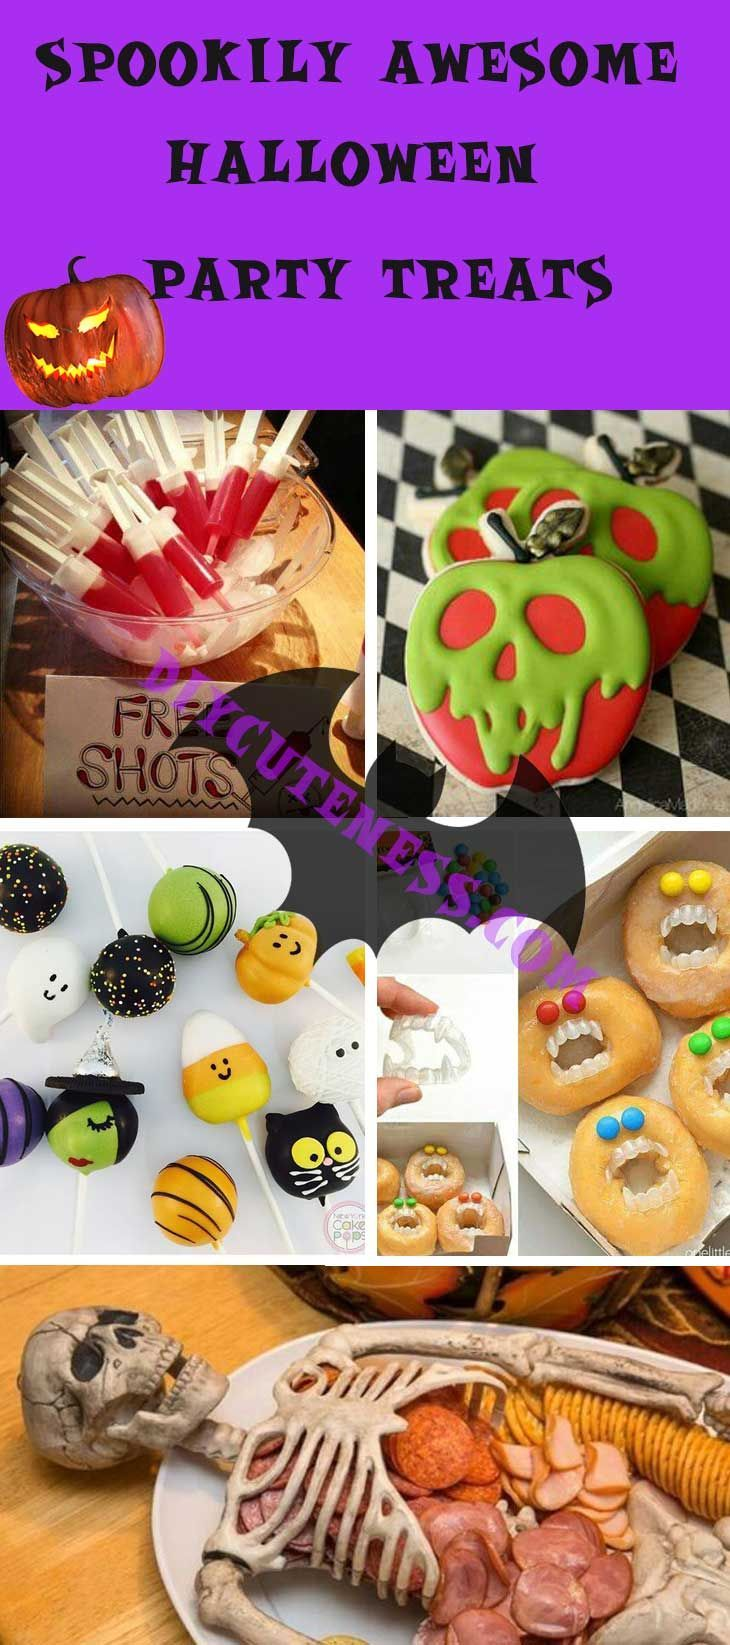 Spooky Halloween Party Food Ideas for Adults Halloween